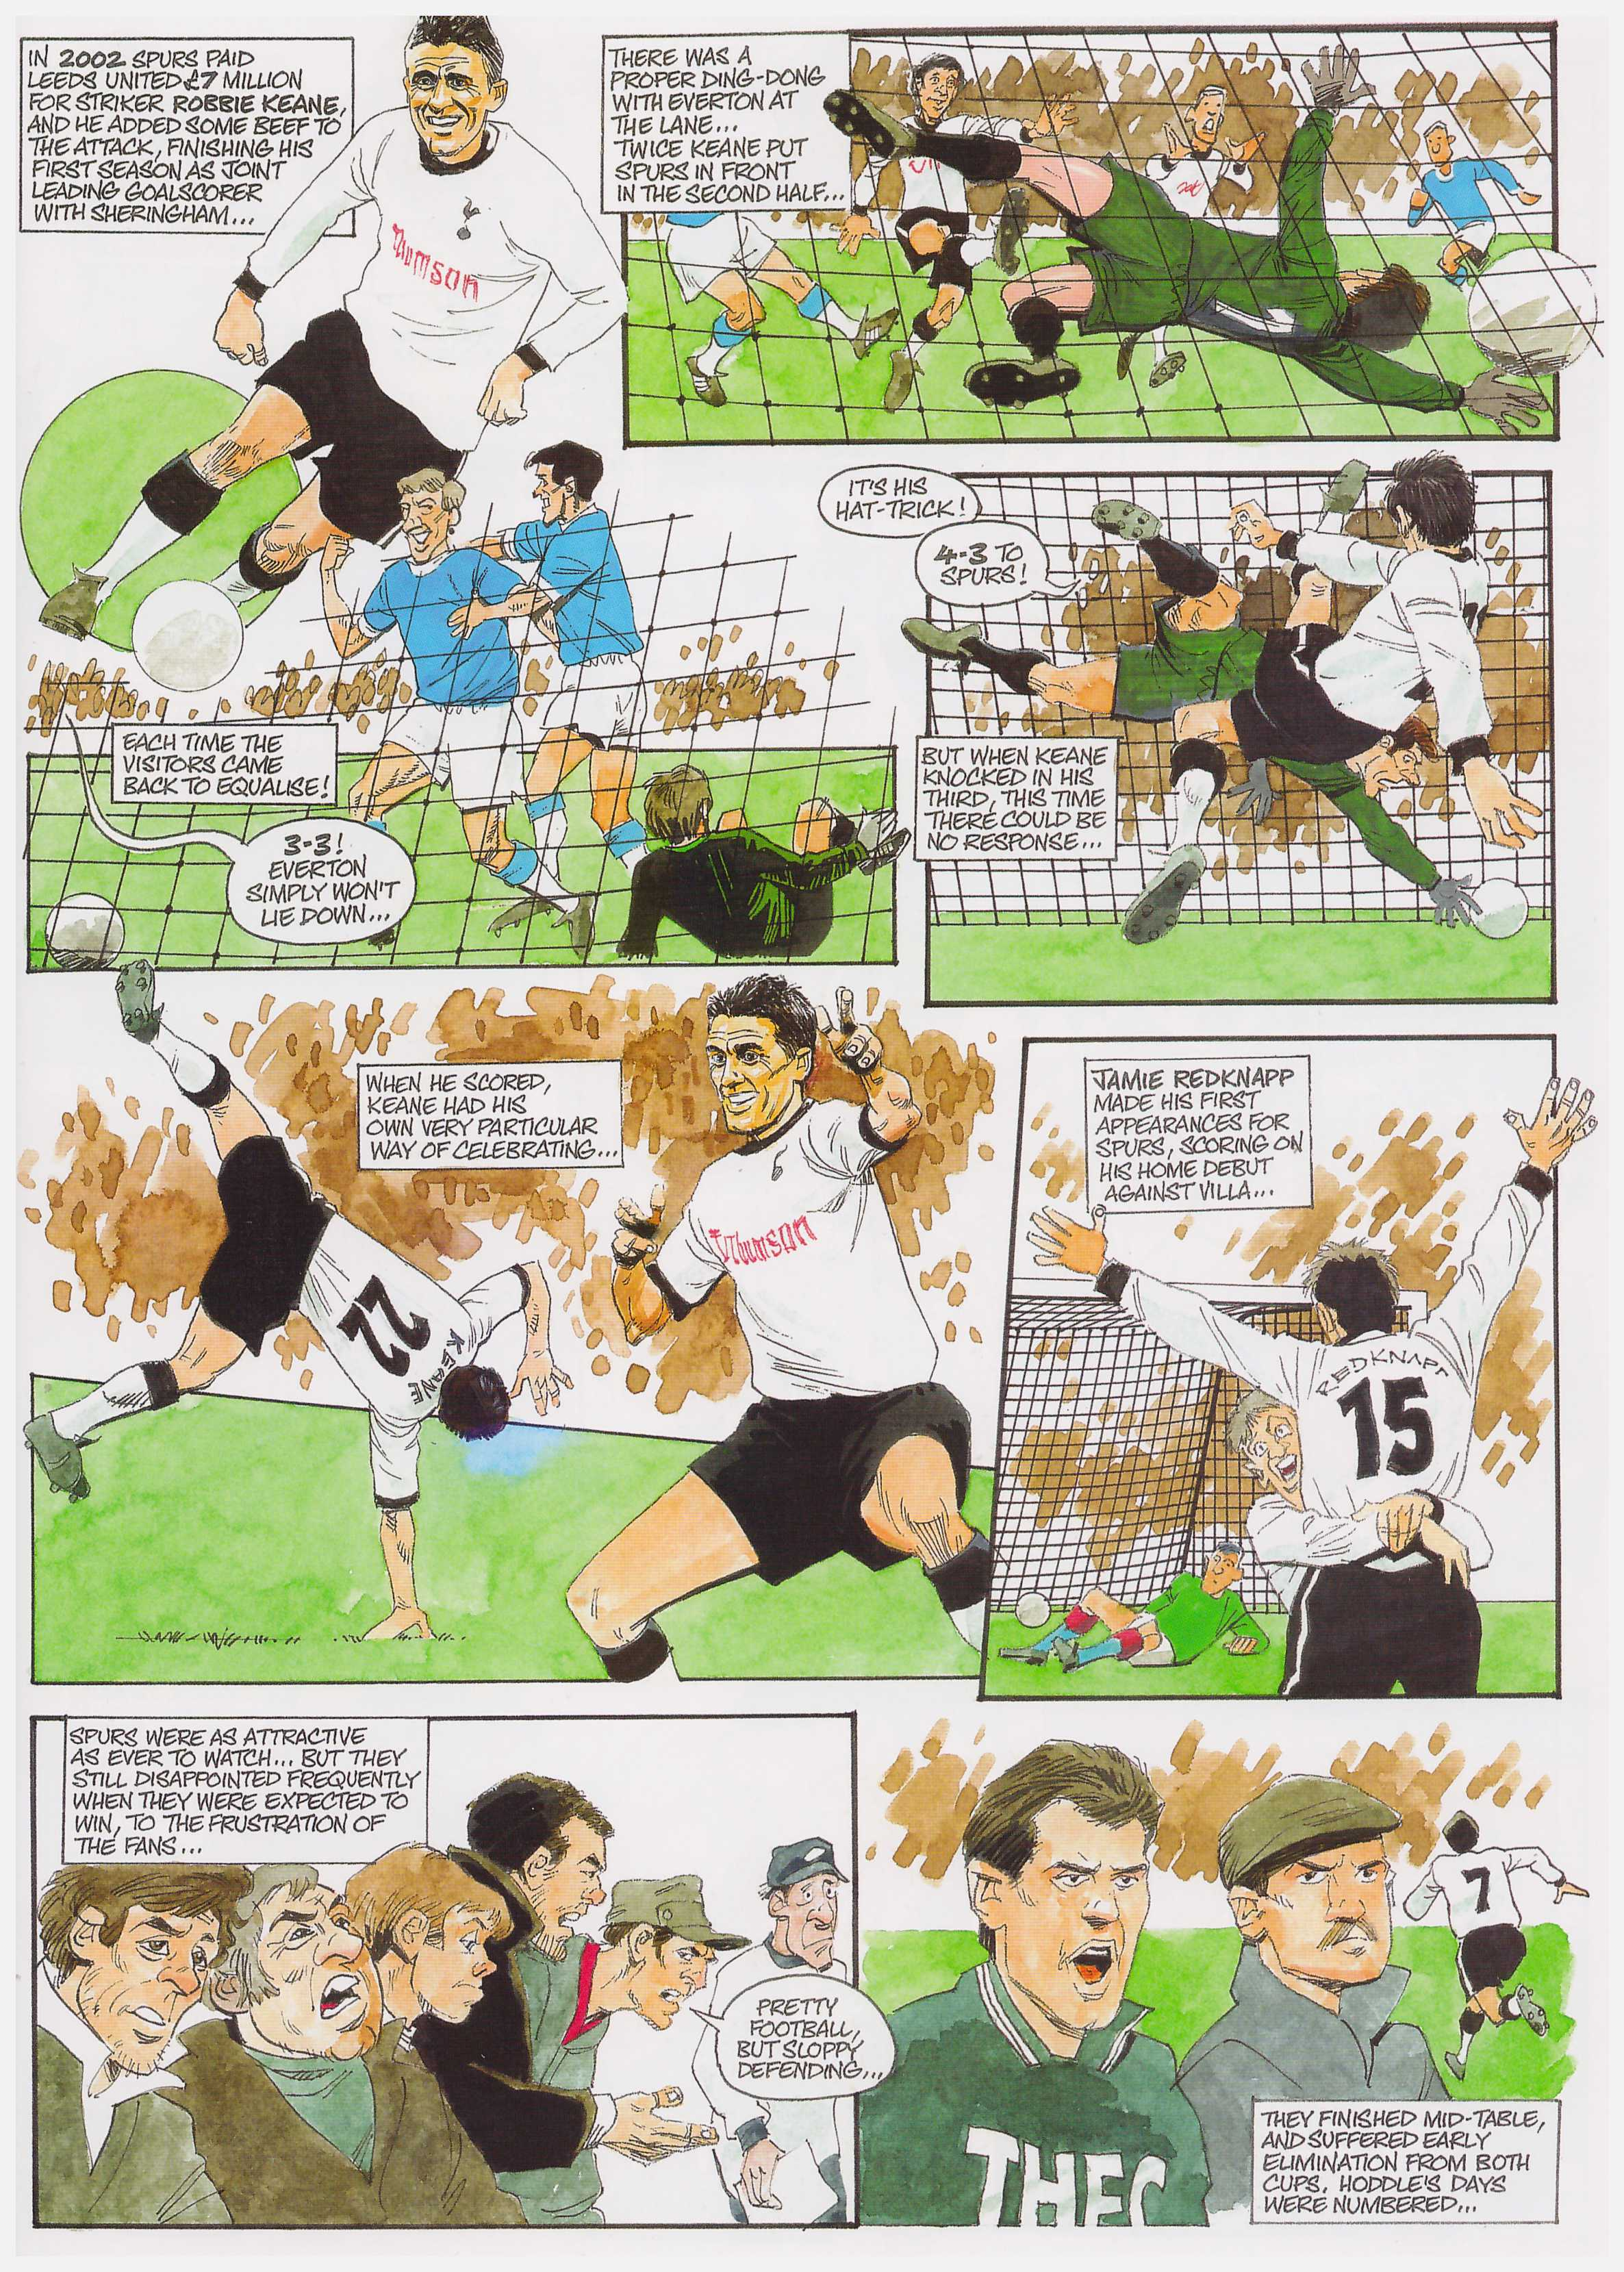 Spurs The Official Comic Strip History review